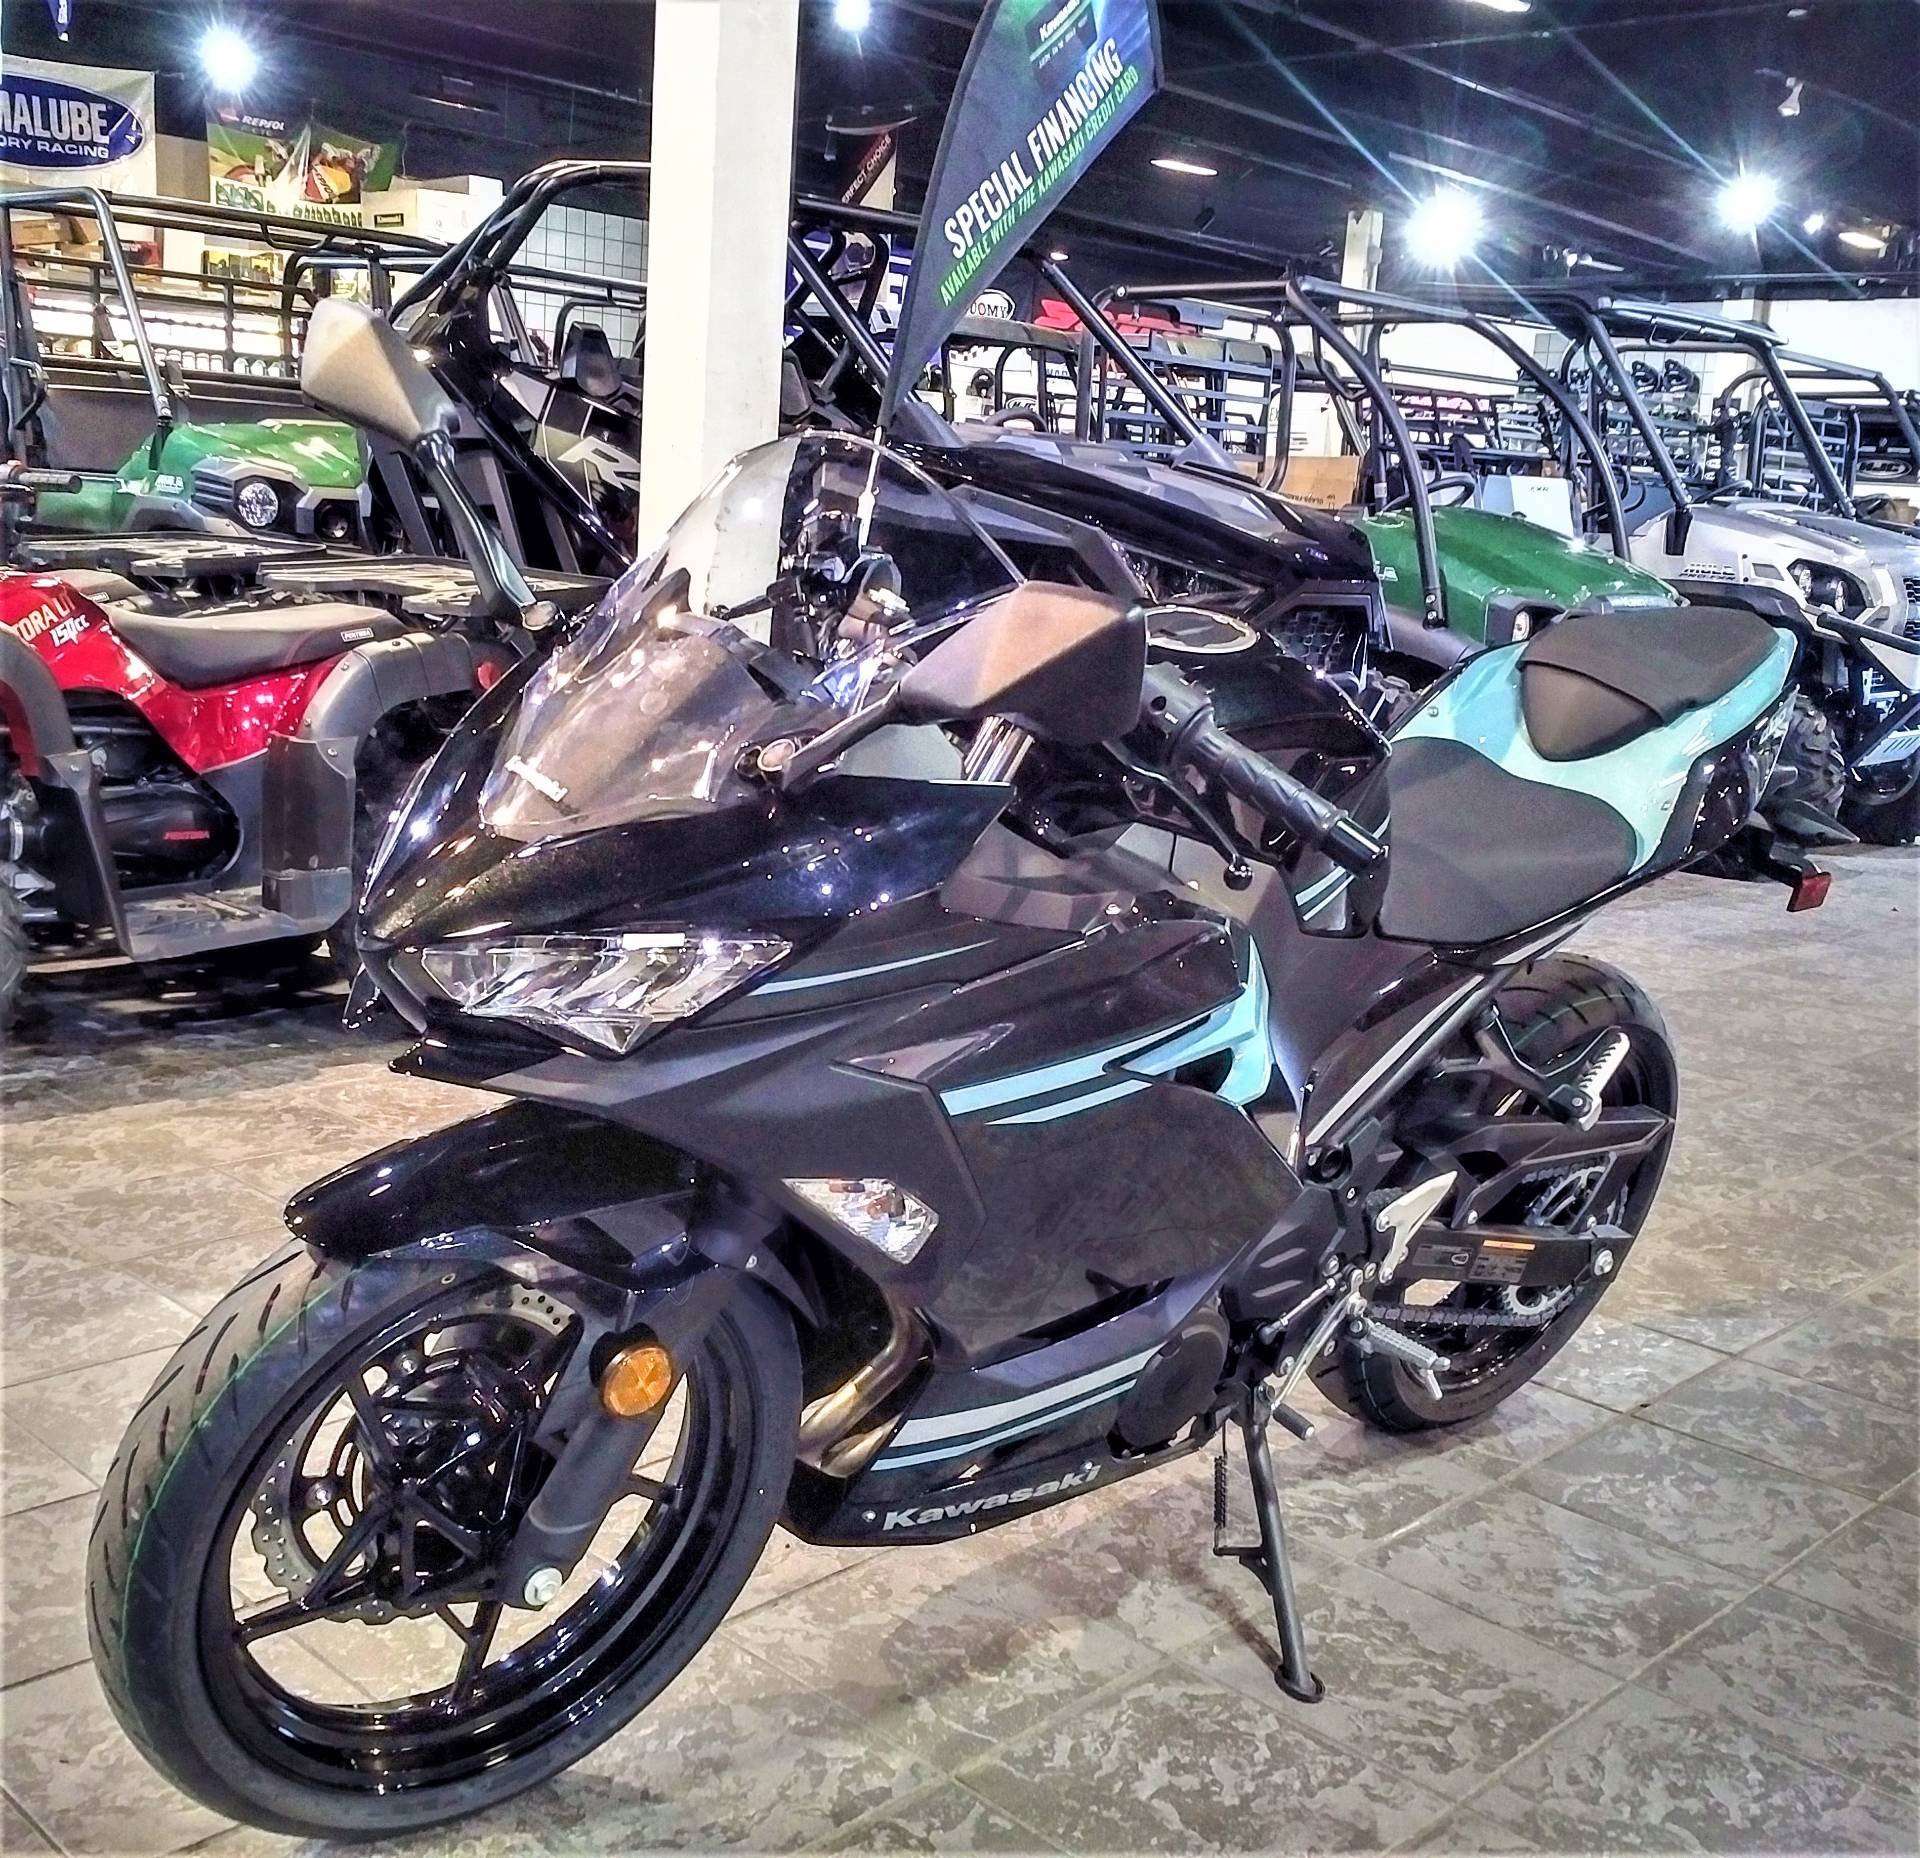 2020 Kawasaki Ninja 400 in Salinas, California - Photo 6